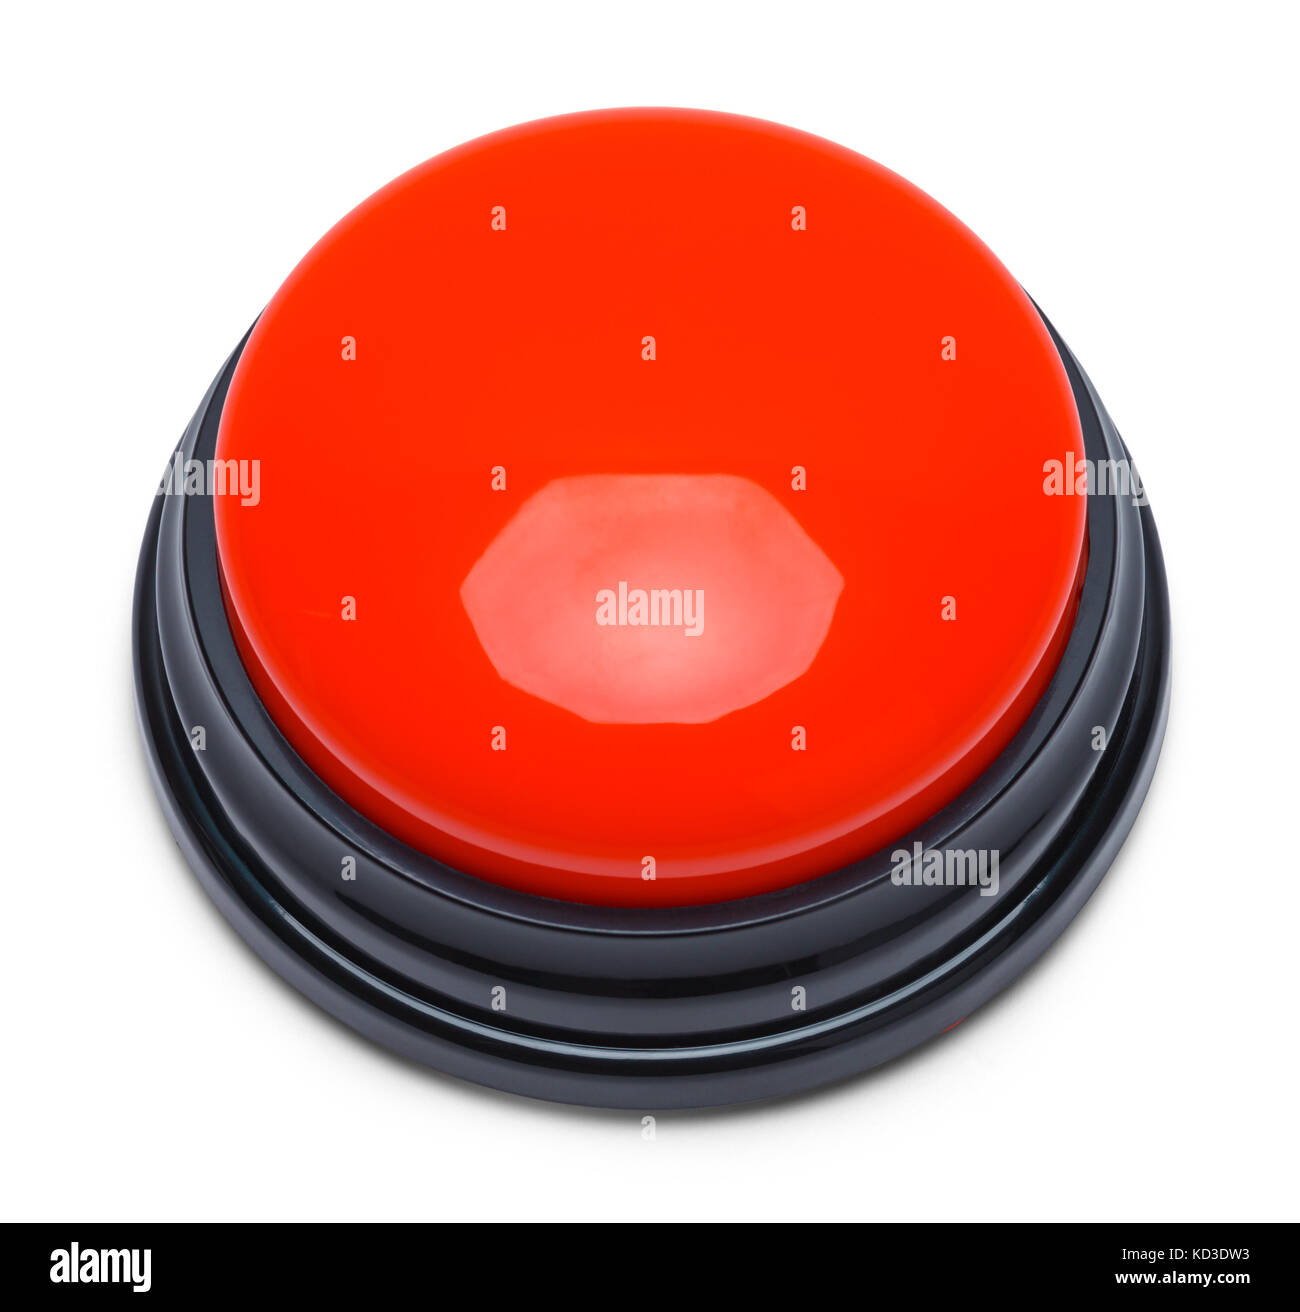 Large Red Push Button Isolated on a White Background. - Stock Image